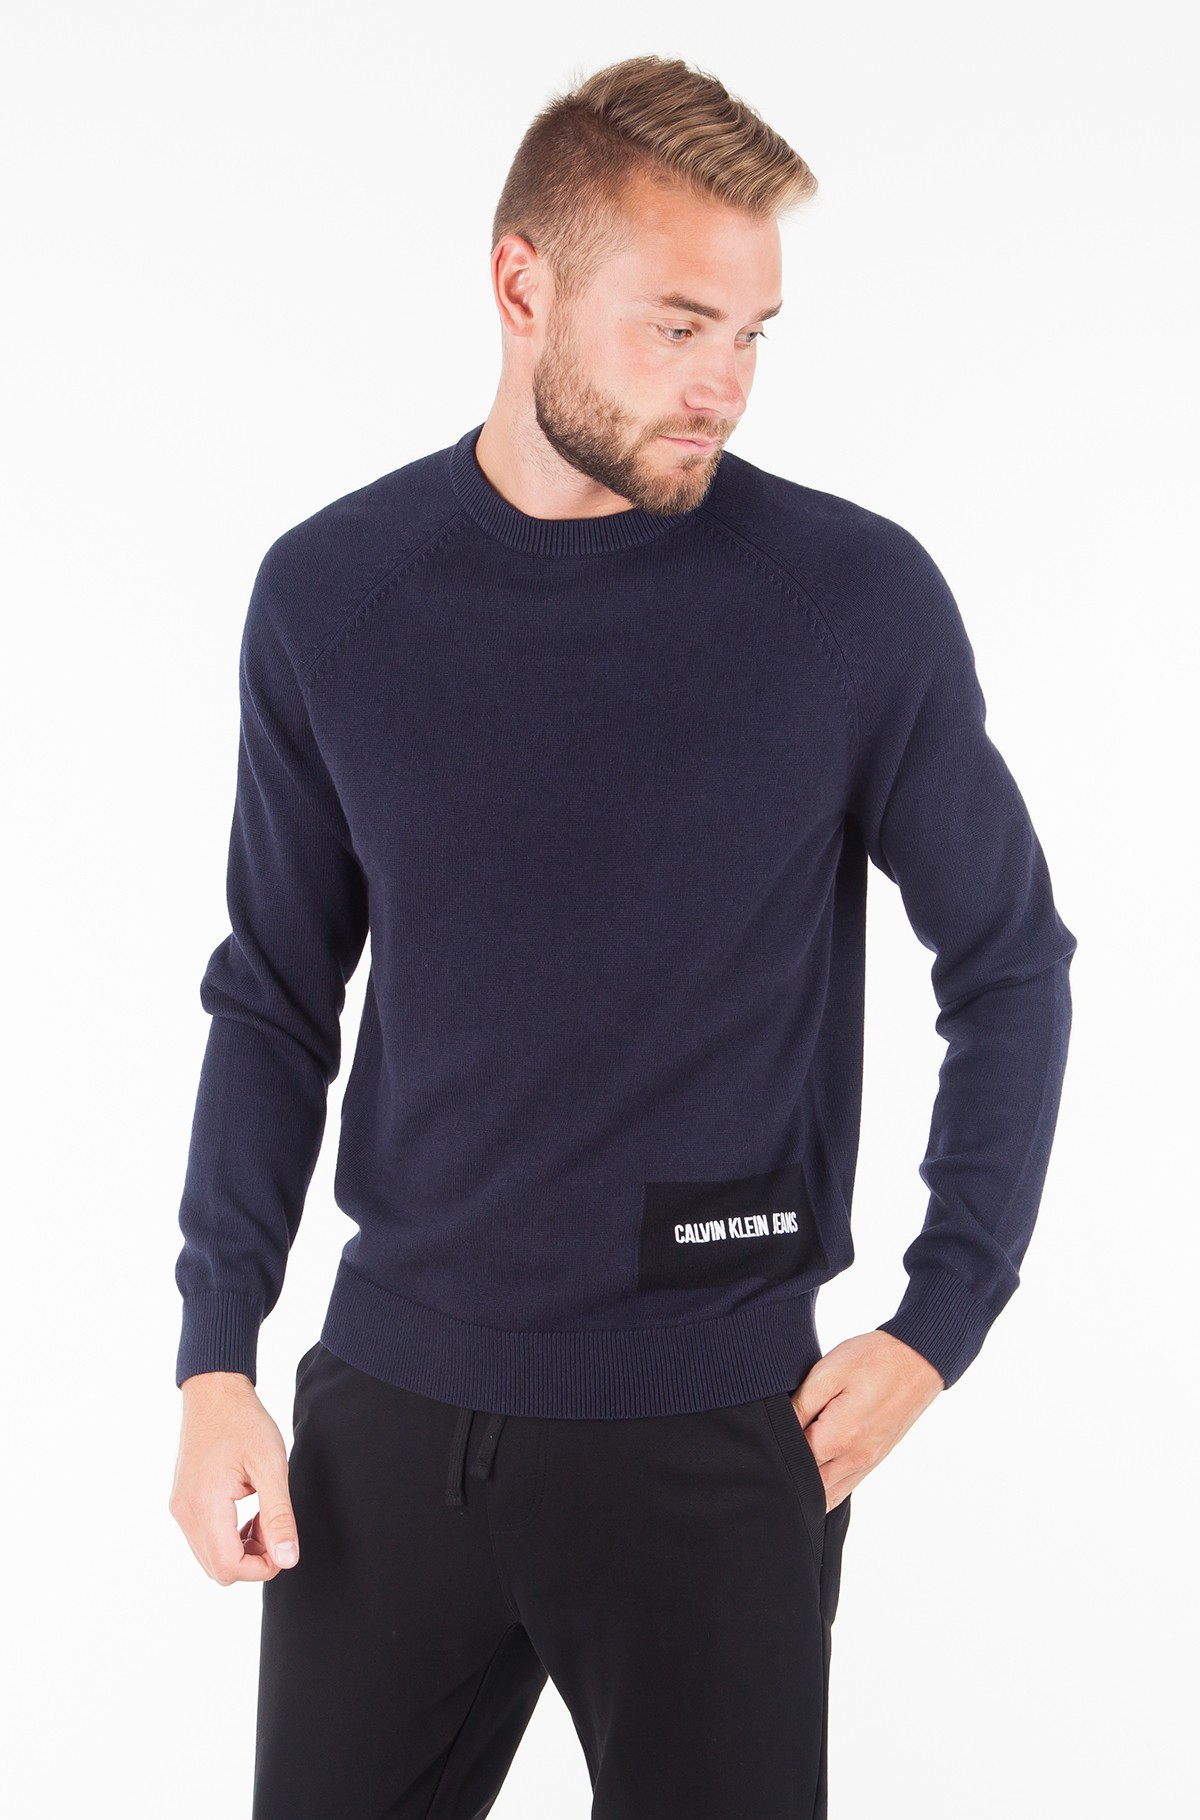 Kampsun WOOL BLEND INSTITUTIONAL LOGO SWEATER-full-1